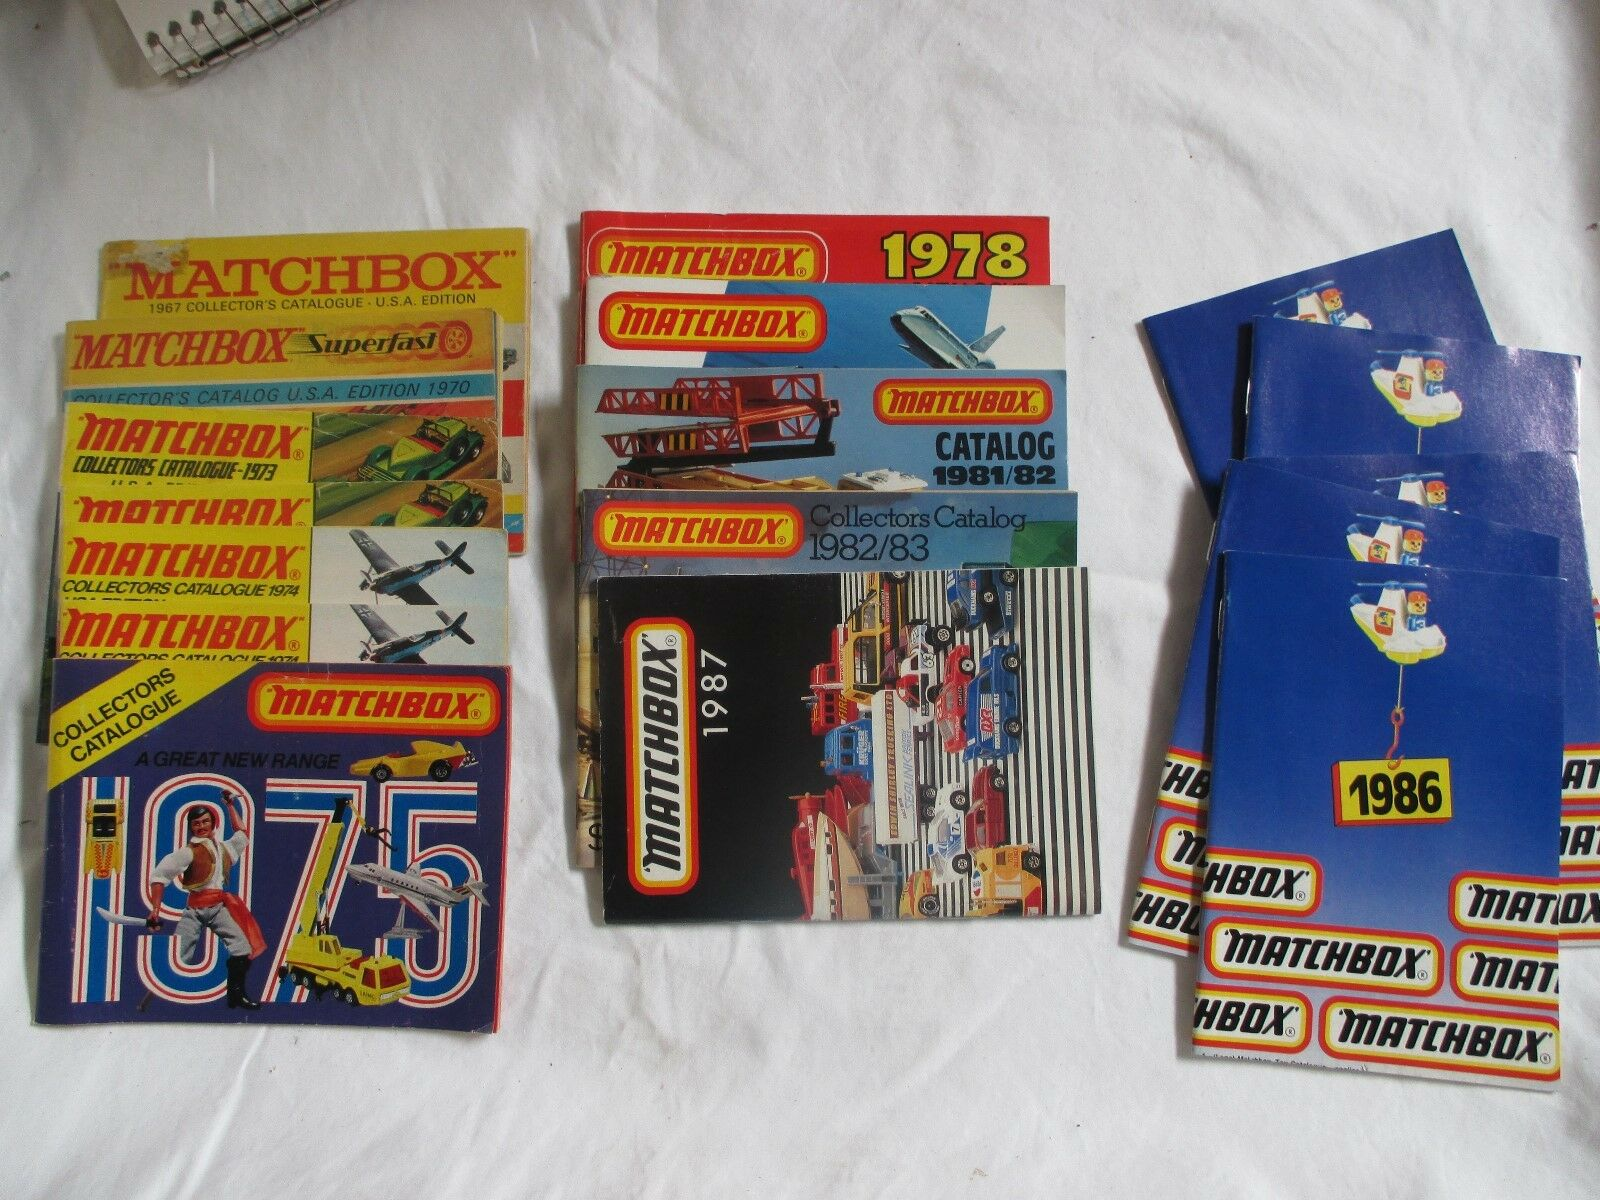 VINTAGE MATCHBOX COLLECTORS CATALOGS 17 IN ALL 1967-1986 ALL IN GOOD-MINT COND